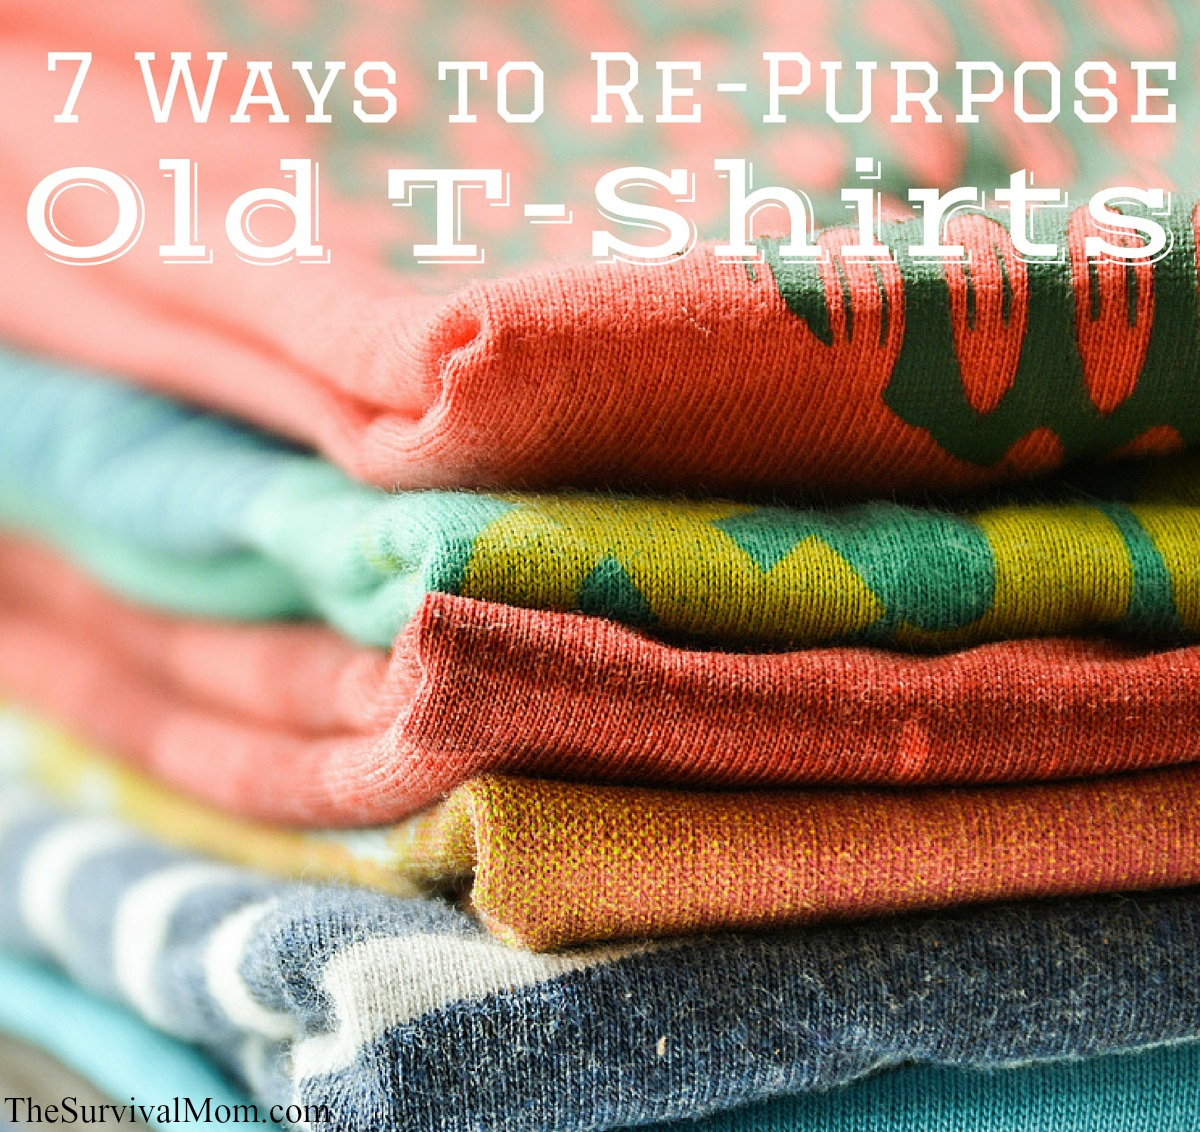 7 Ways to Re-Purpose Old T-Shirts via The Survival Mom